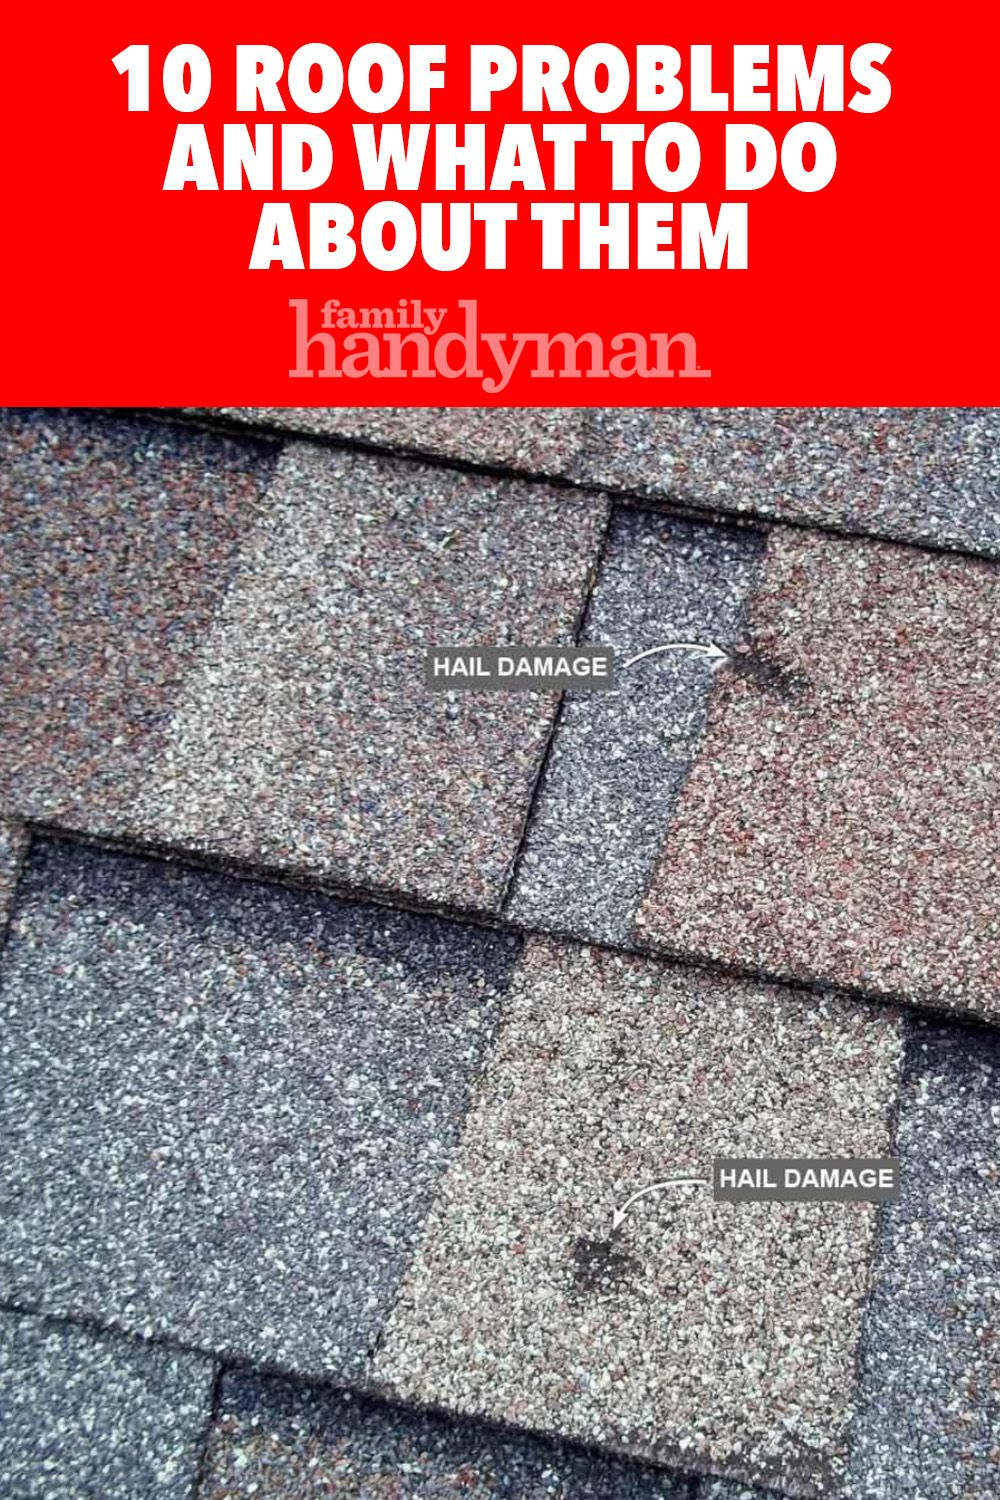 10 Roof Problems And What To Do About Them Roof Problems Roof Fibreglass Roof